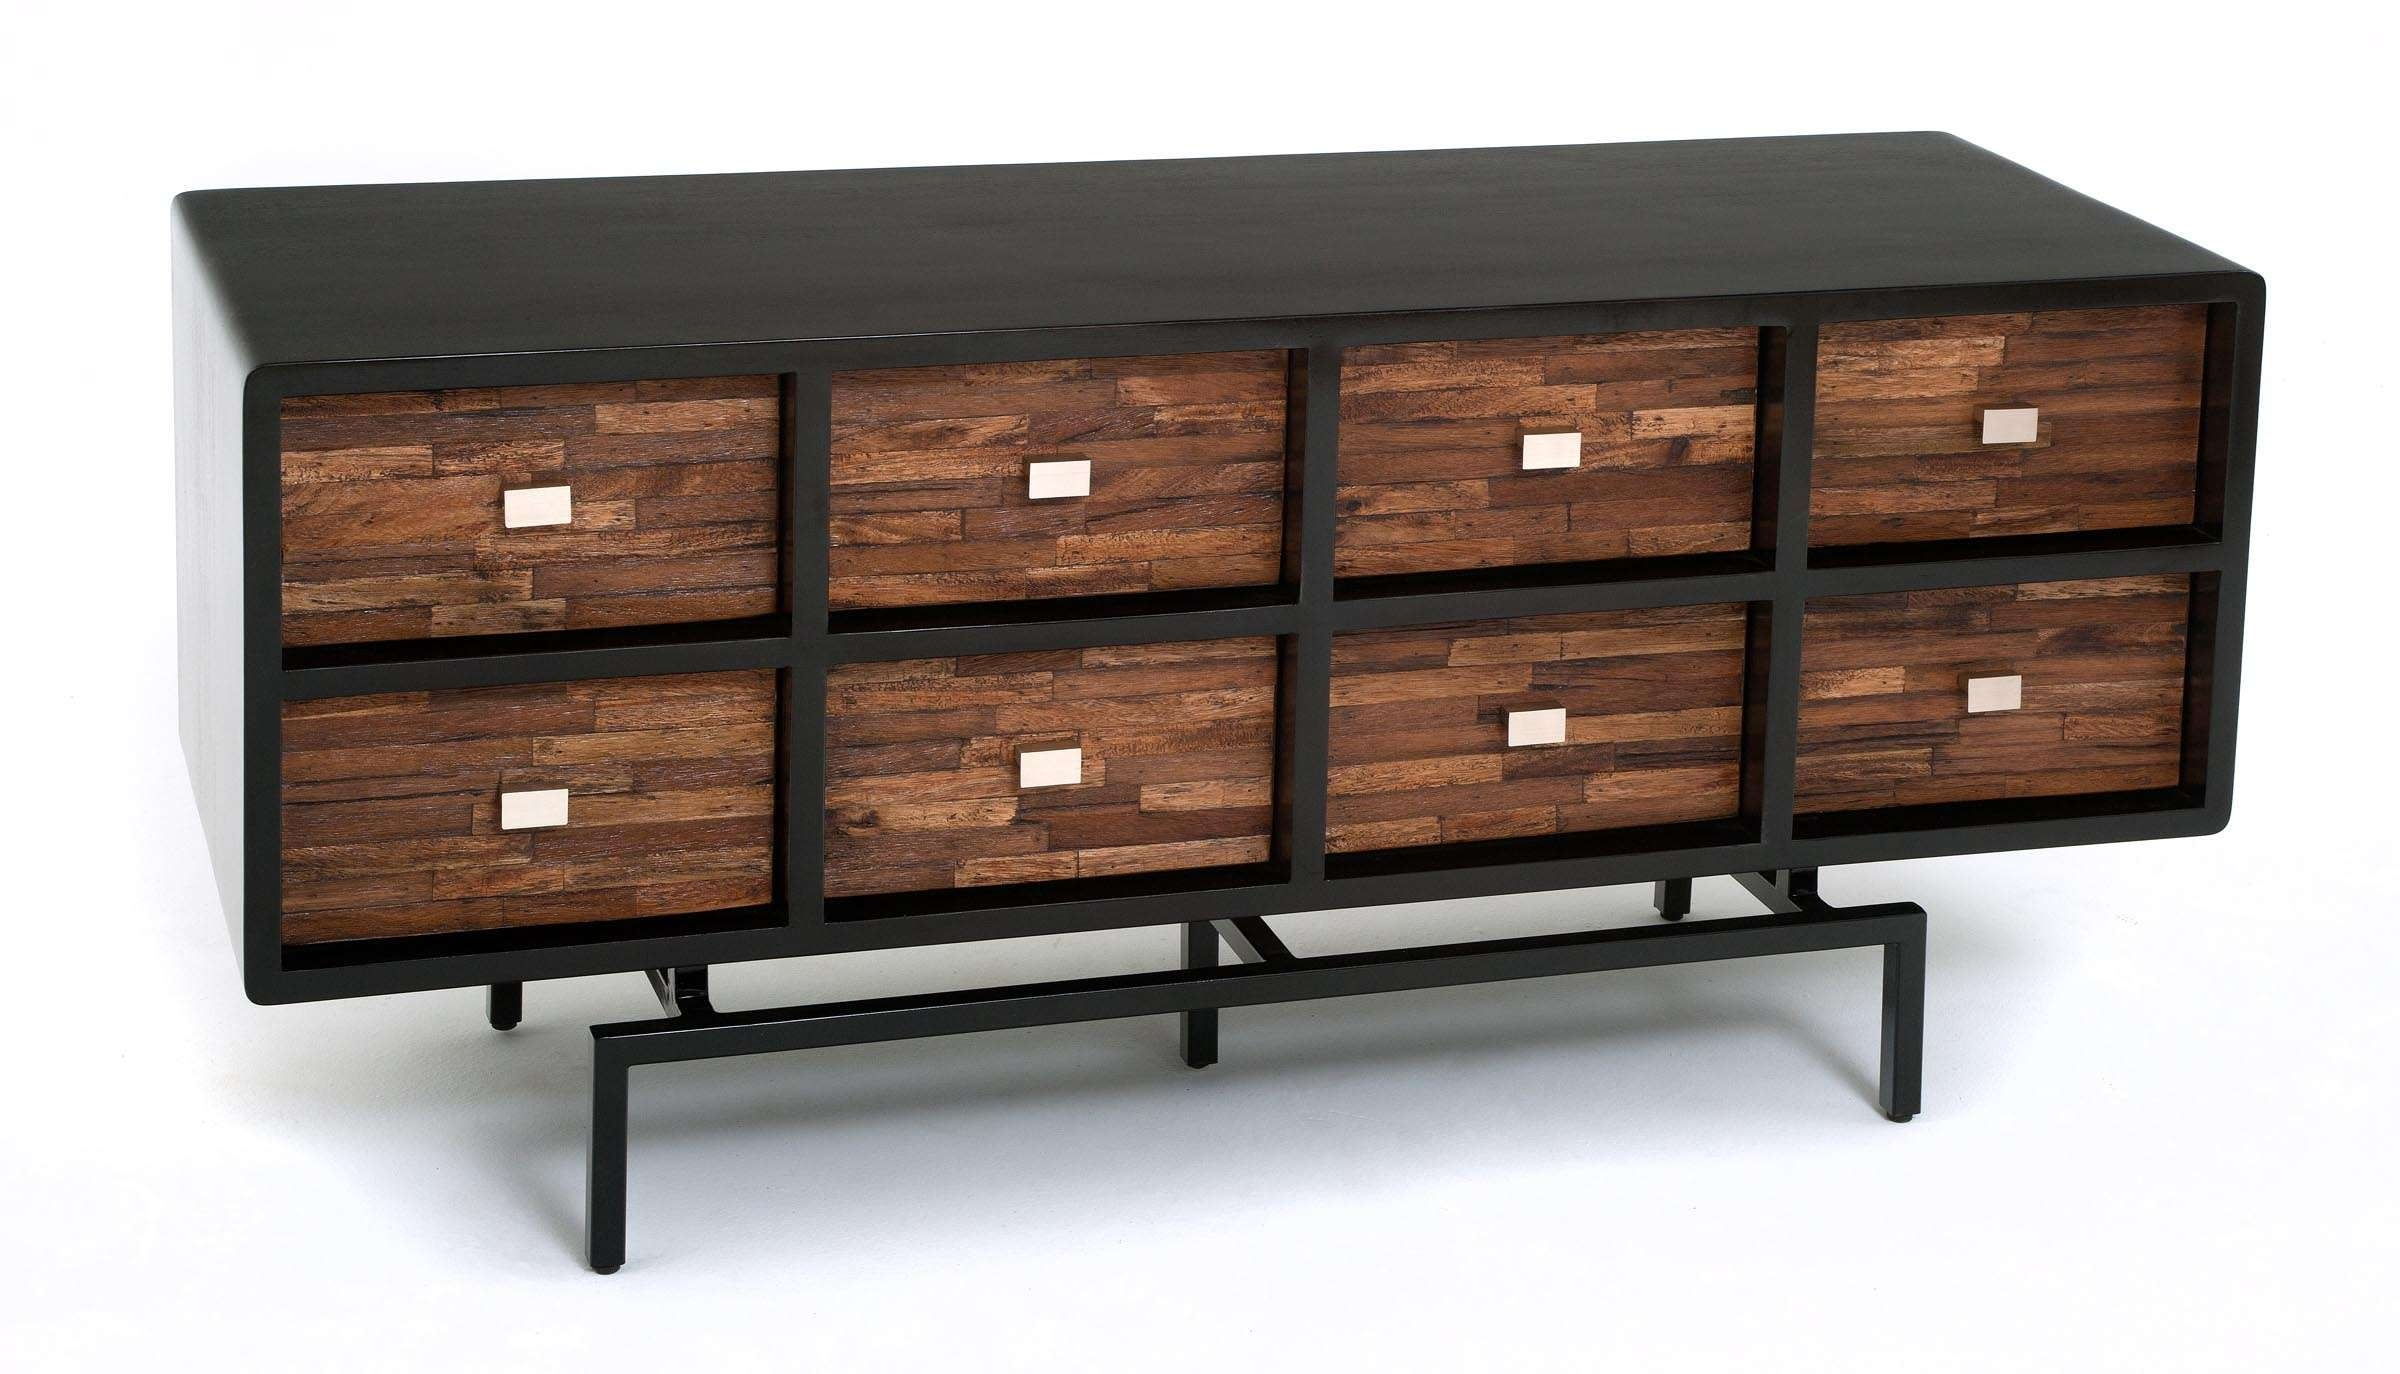 Soft Modern Furniture, Sustainable Sideboard, Reclaimed Wood For Reclaimed Sideboards (View 18 of 20)